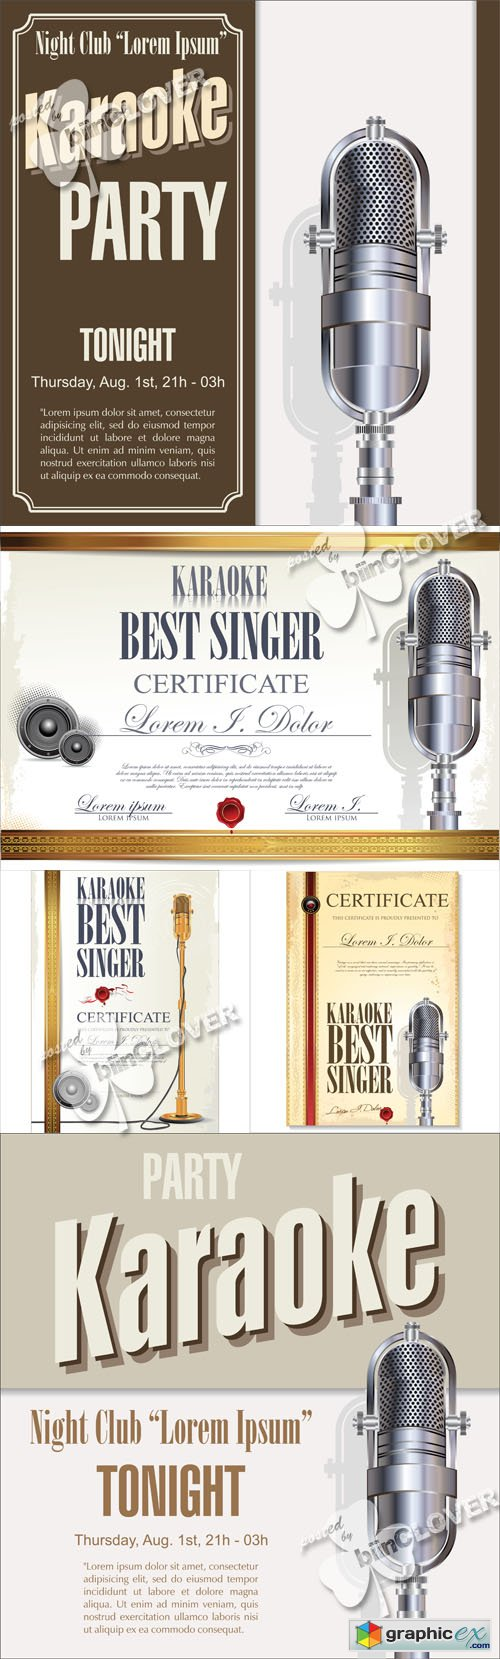 Vector Karaoke background and certificate template 0546